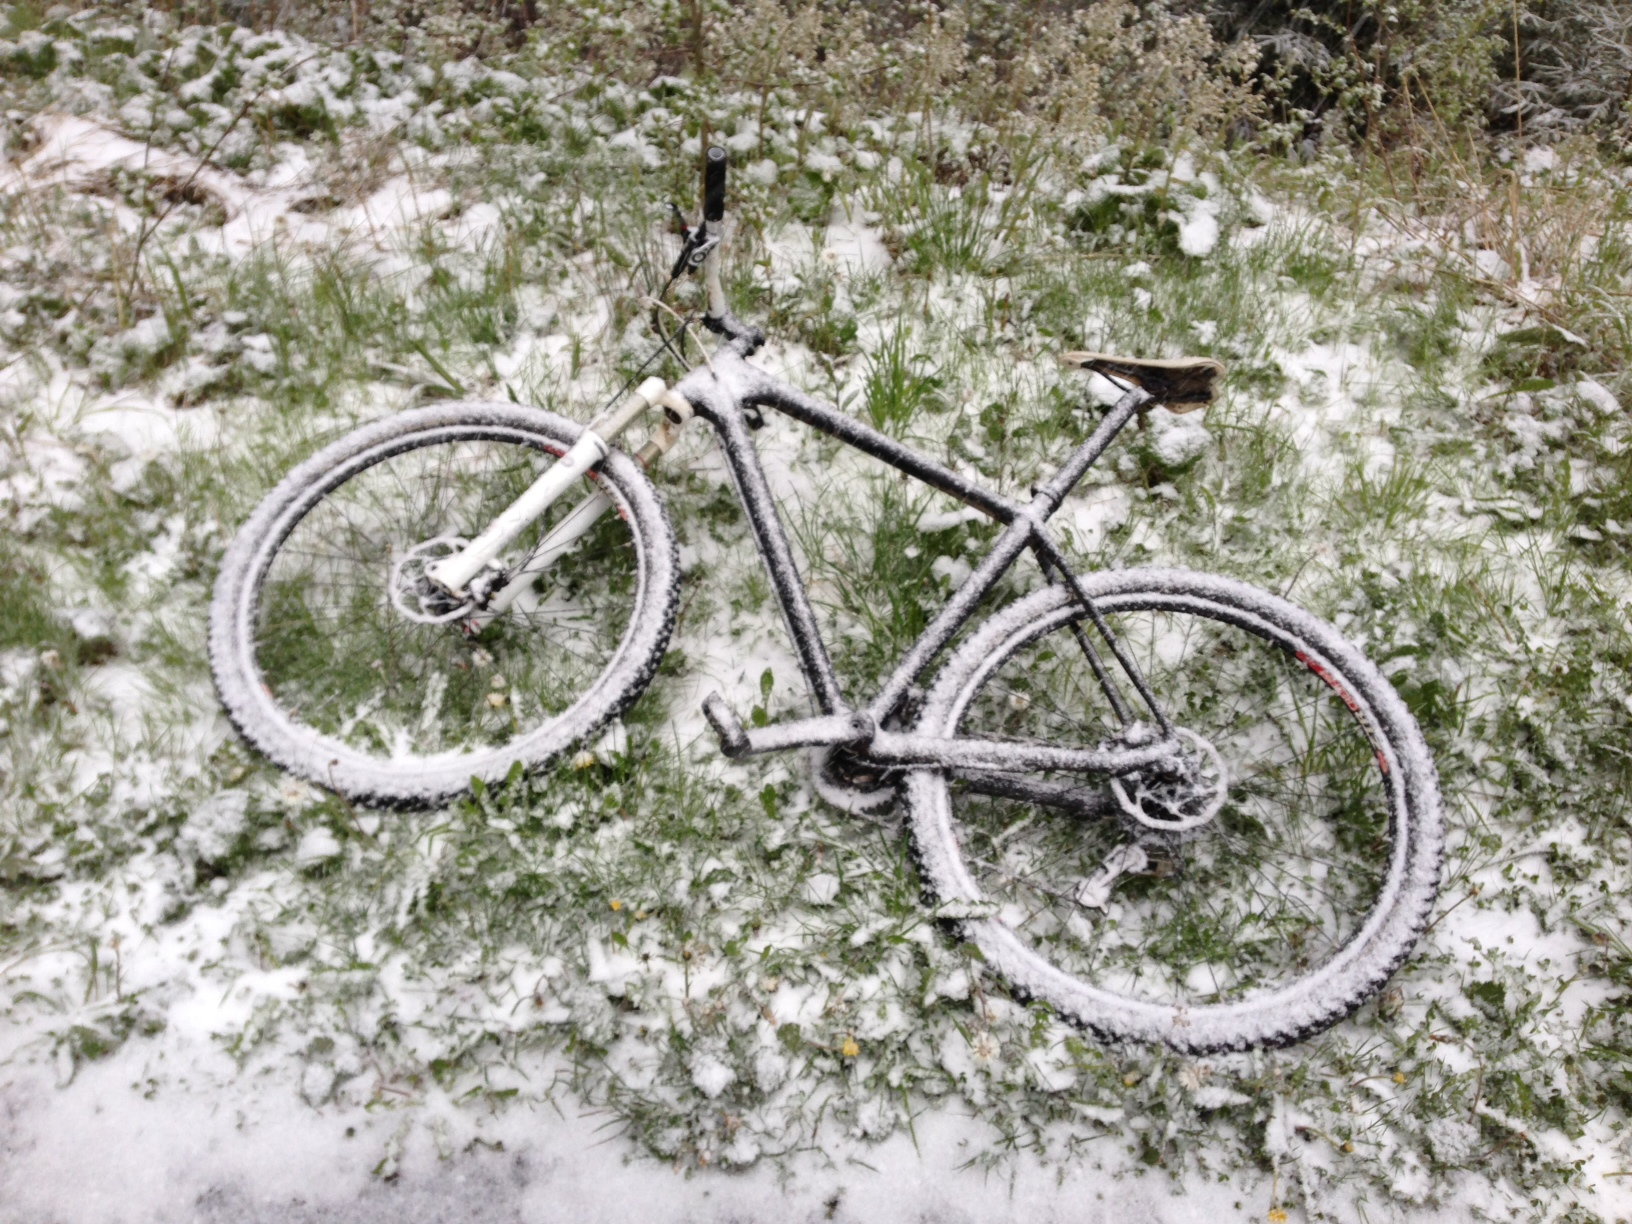 I only left it there for 5 minutes. The wonders of winter riding in Switzerland.